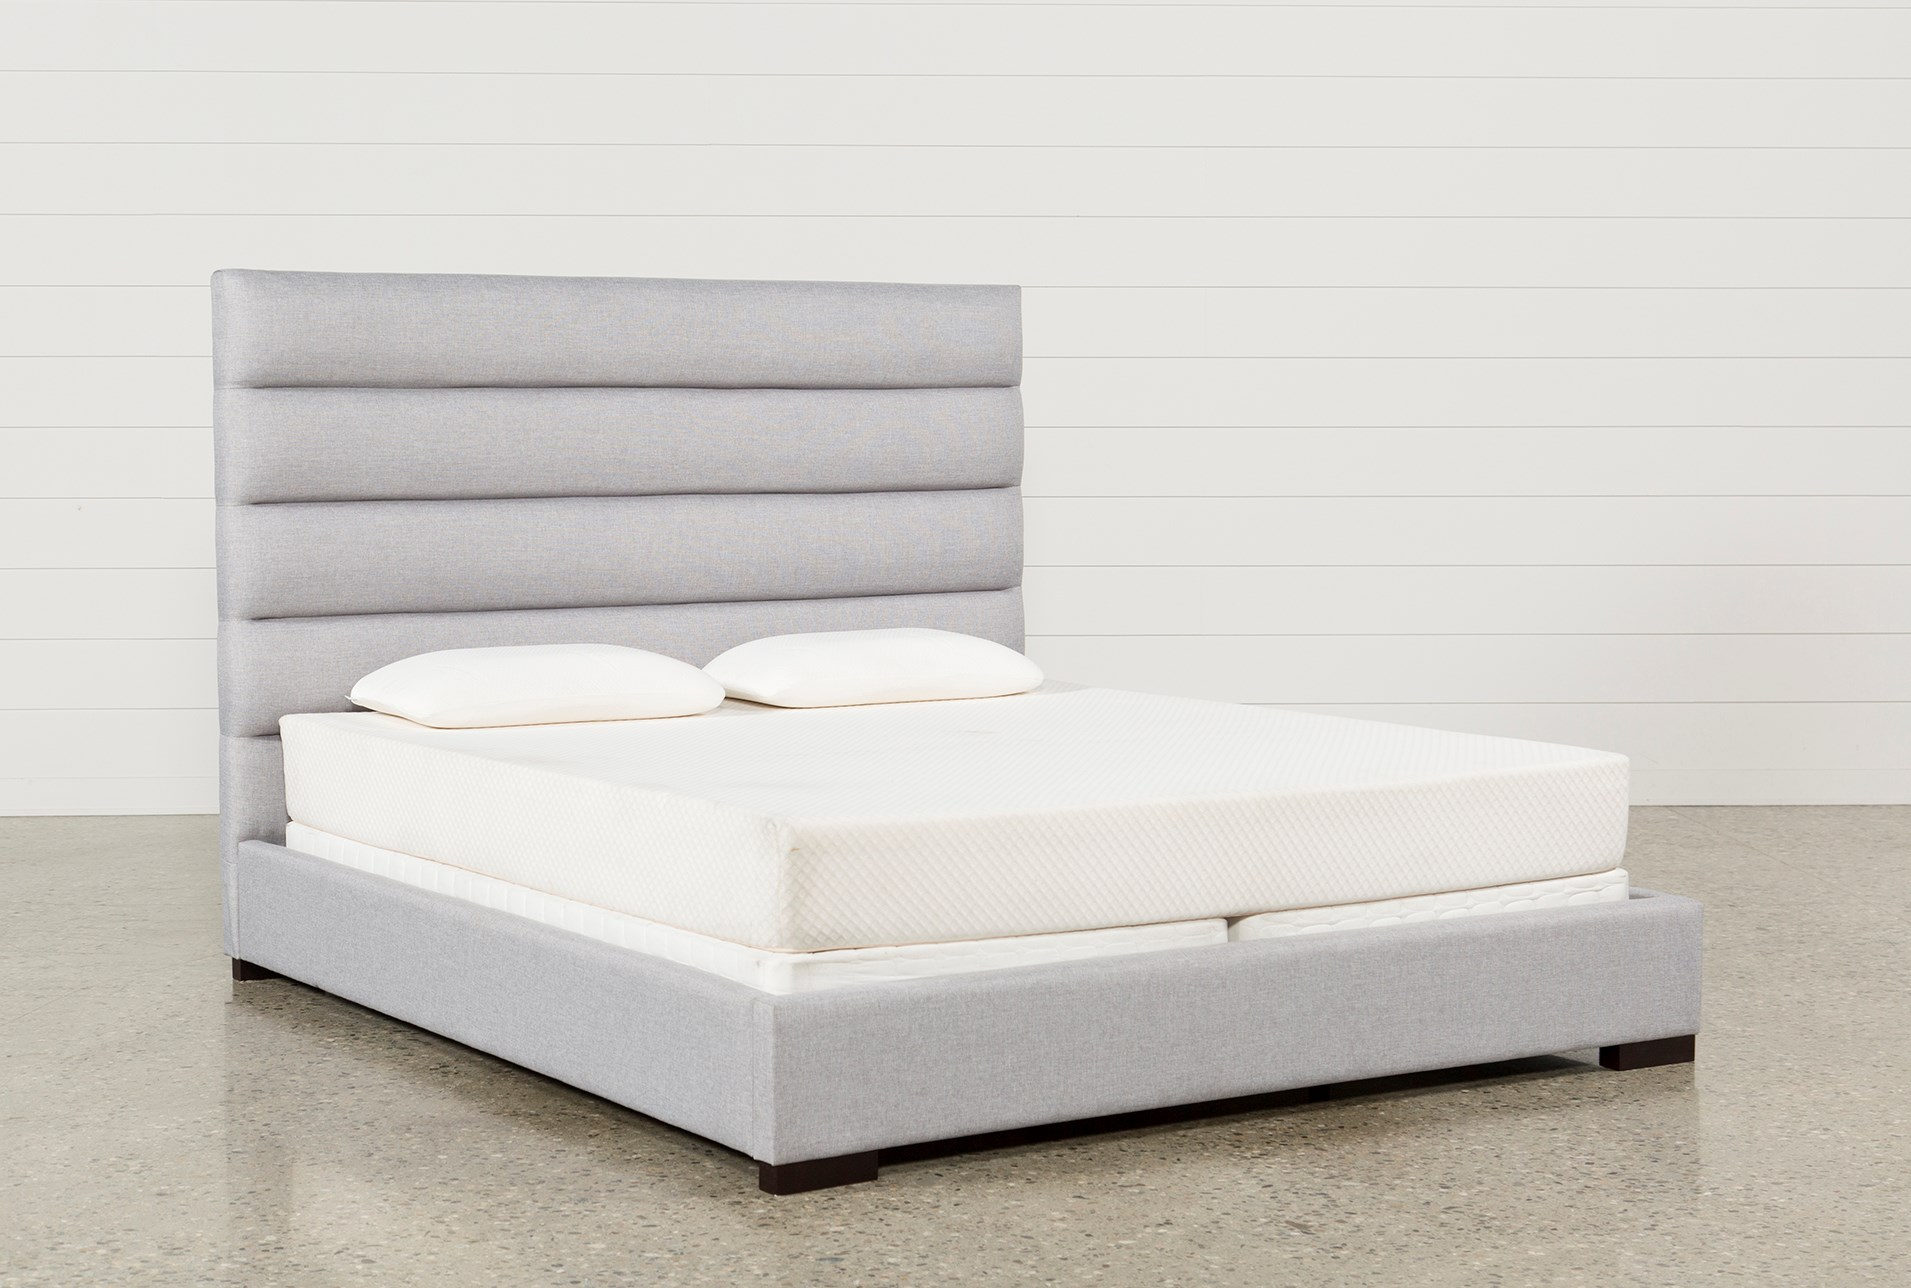 Hudson Eastern King Upholstered Platform Bed Qty 1 Has Been Successfully Added To Your Cart